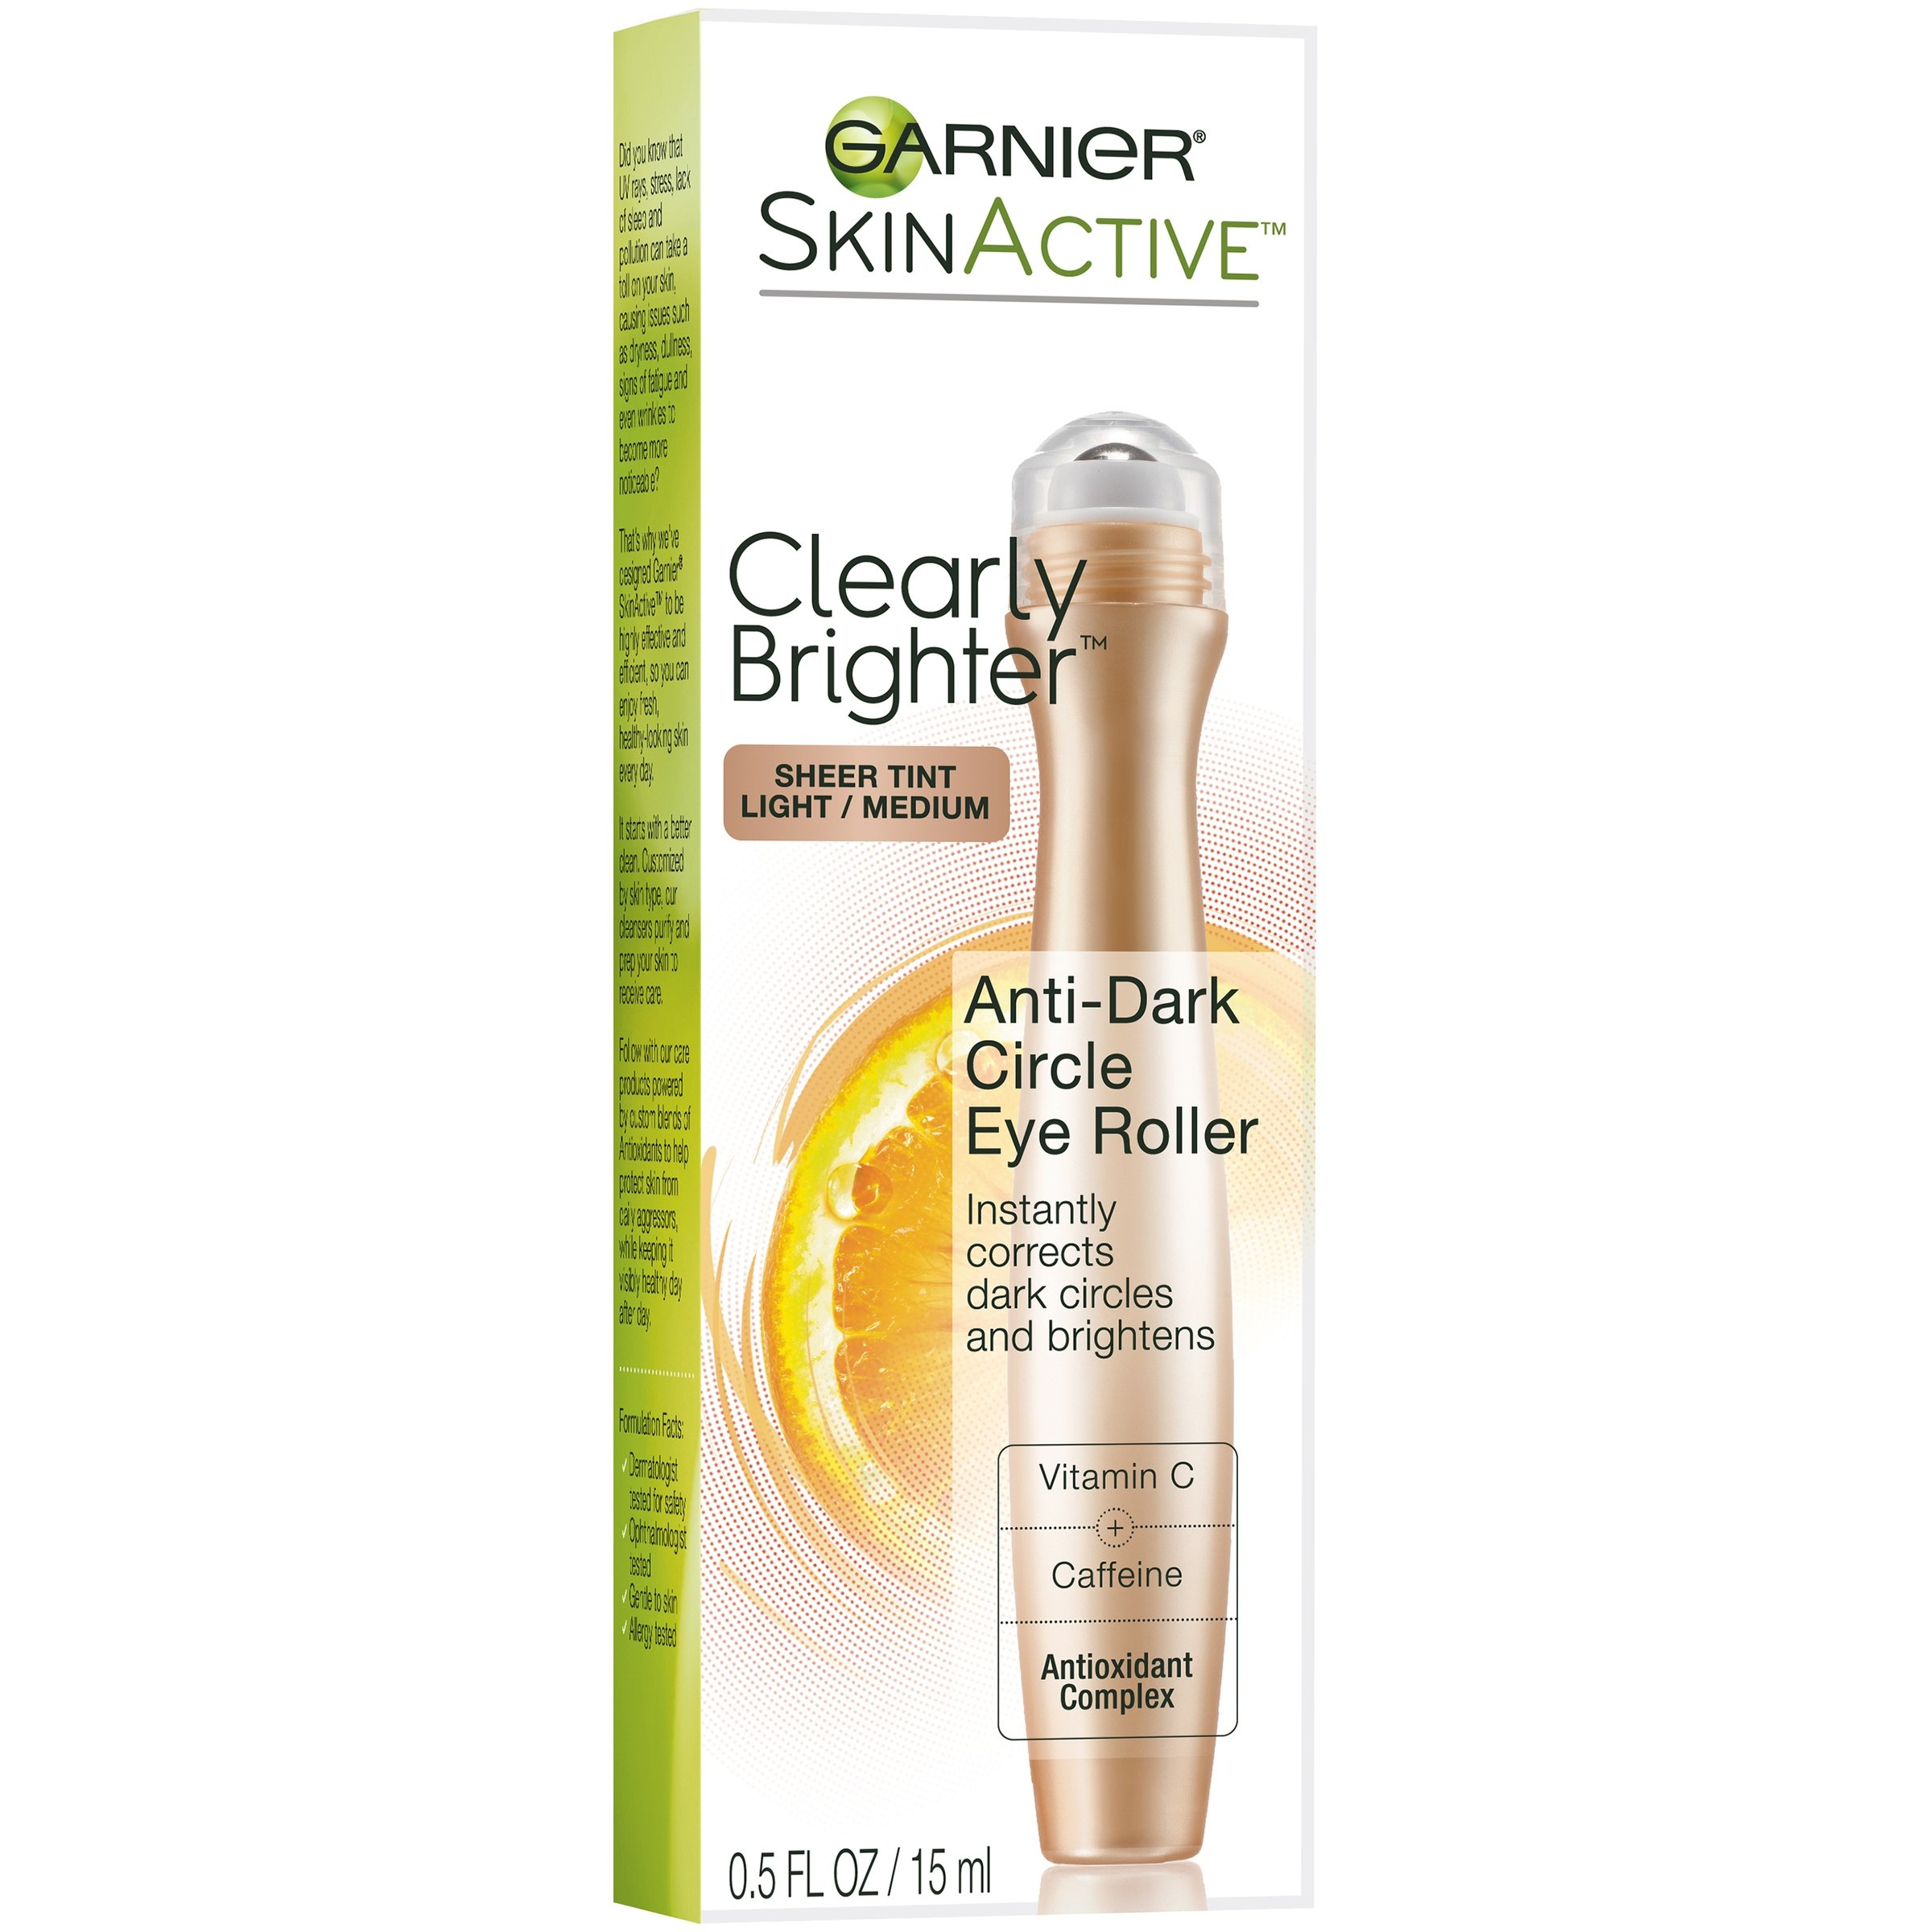 2 Pack - Garnier SkinActive Clearly Brighter Anti-Puff Eye Roller 0.5 oz Clear Skin Acne Solution and Scar Reducer Benzoyl peroxid free Organic Anti-acne treatment and Acne Scars Reducing Cream. No Burning or Drying Skin.